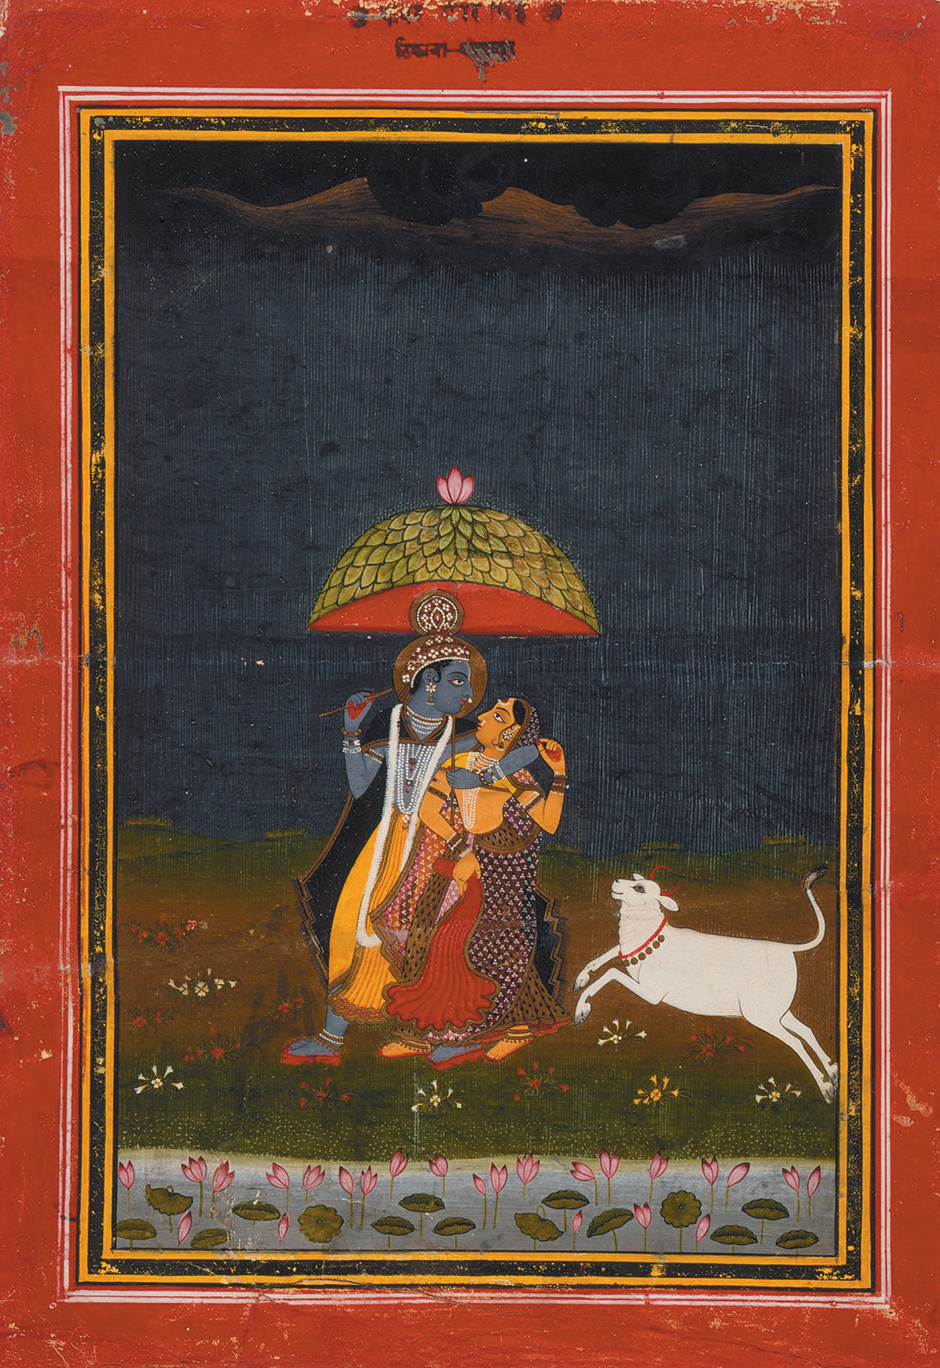 war and peace in the bhagavad gita by wendy do the new do 2 120414 jpg